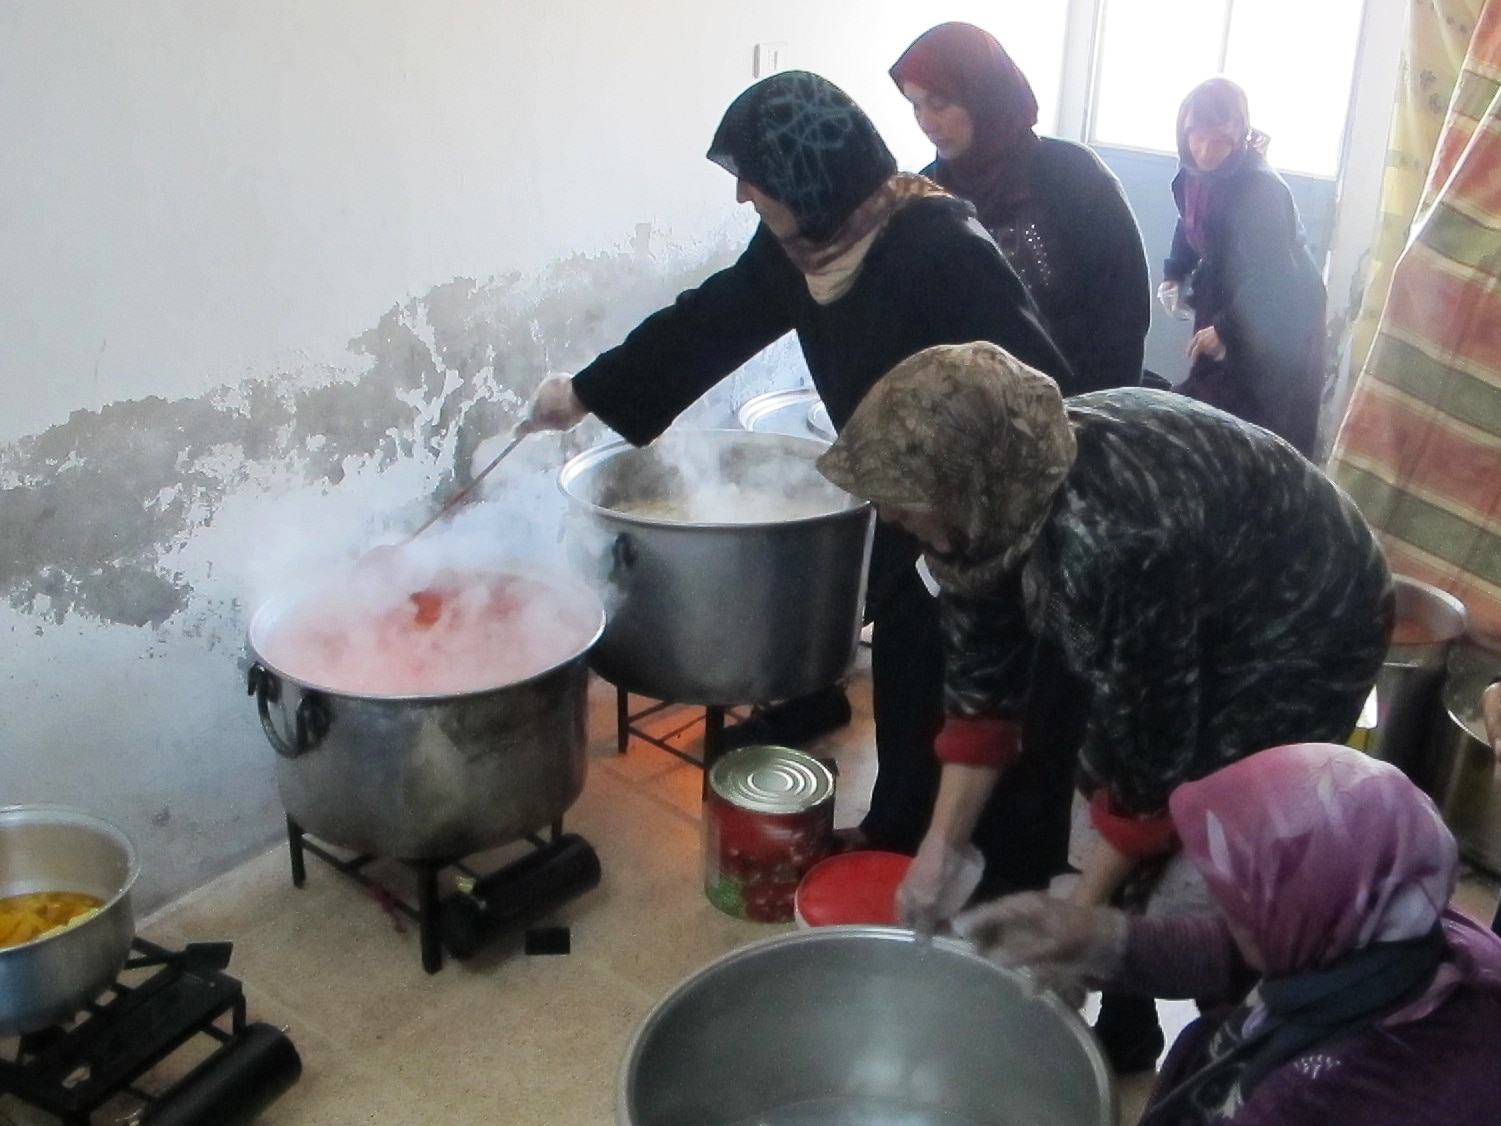 Today (December 17, 2013) we are transporting food for 1200 families in northern Syria, in collaboration with one women's organisation from the Syrian side and a Turkish organisation from the Turkish side. Today we have rice, potatoes and meat. About forty women in Syria will cook it and then it will be delivered to four different camps.""